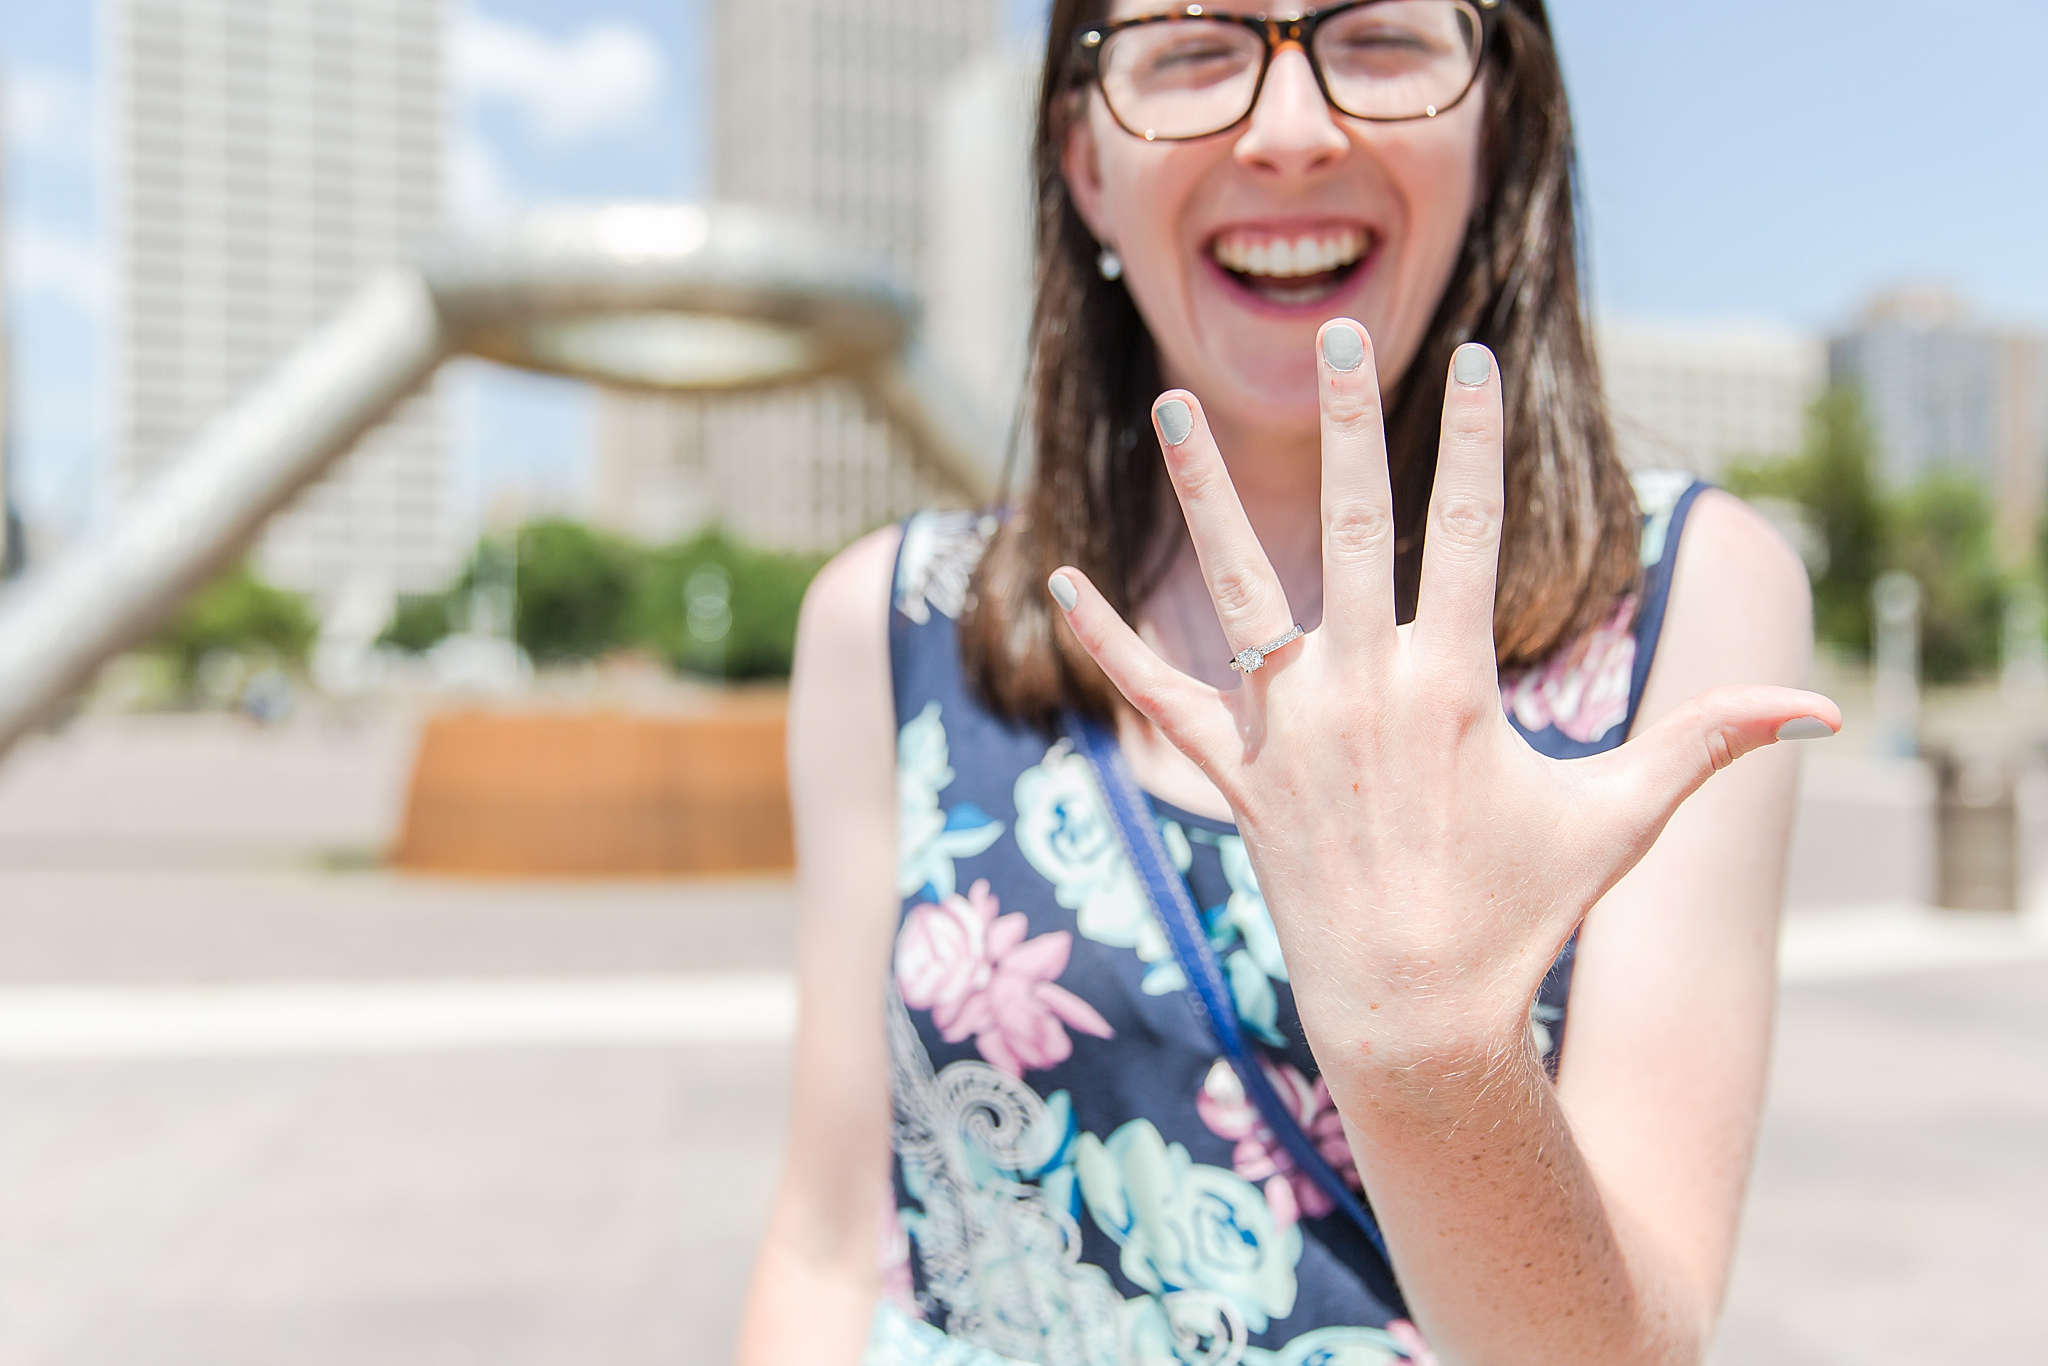 detroit-wedding-photographer-surprise-proposal-in-downtown-detroit-josh-taylor-by-courtney-carolyn-photography_0008.jpg